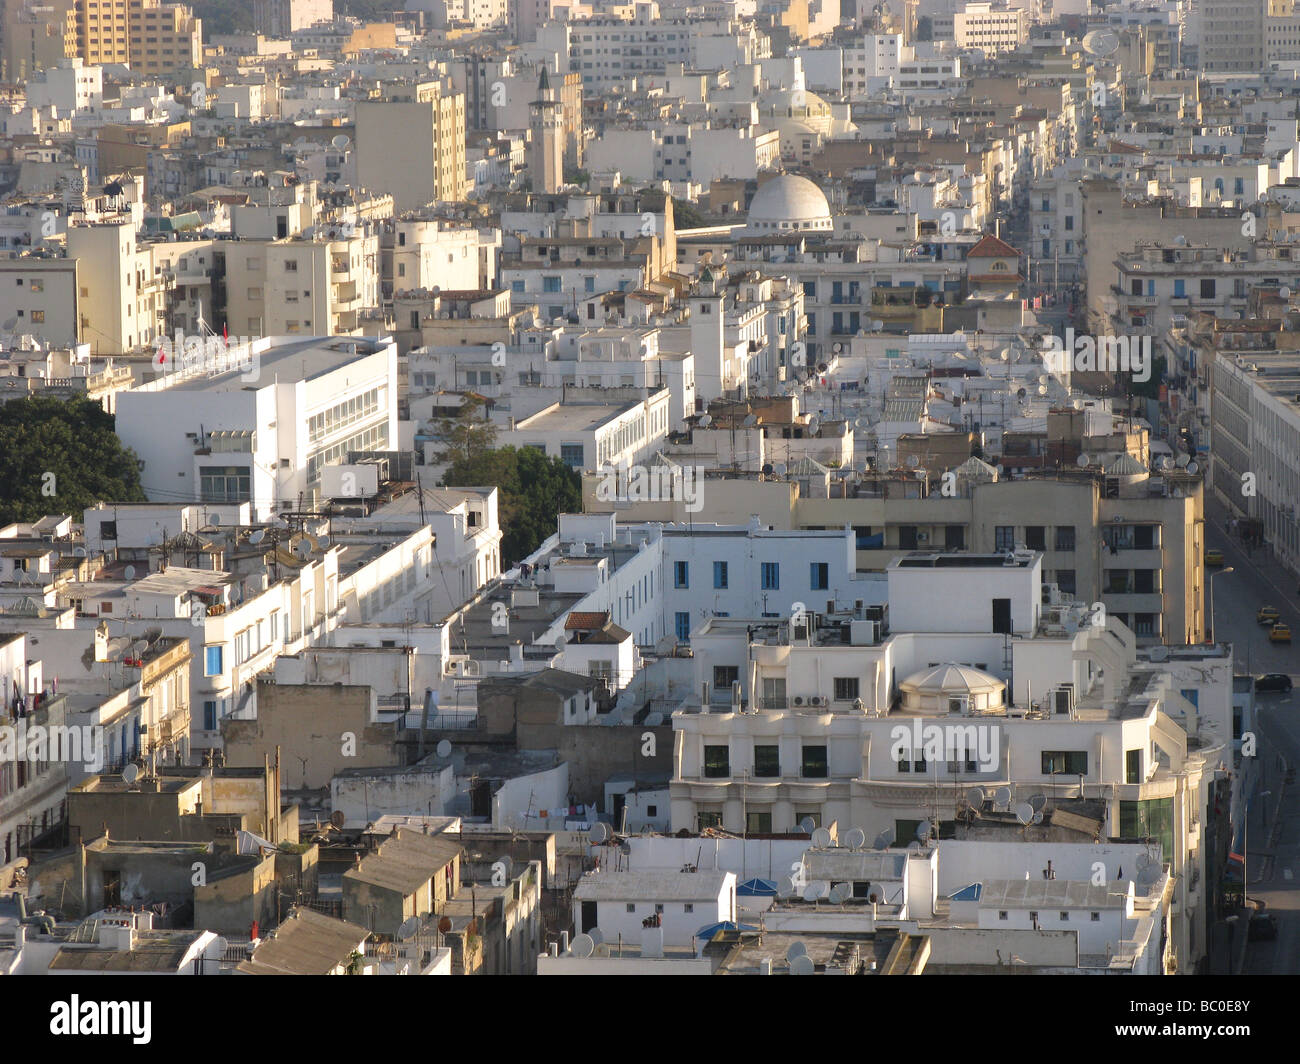 TUNIS, TUNISIA. A view over the city centre. 2009. - Stock Image